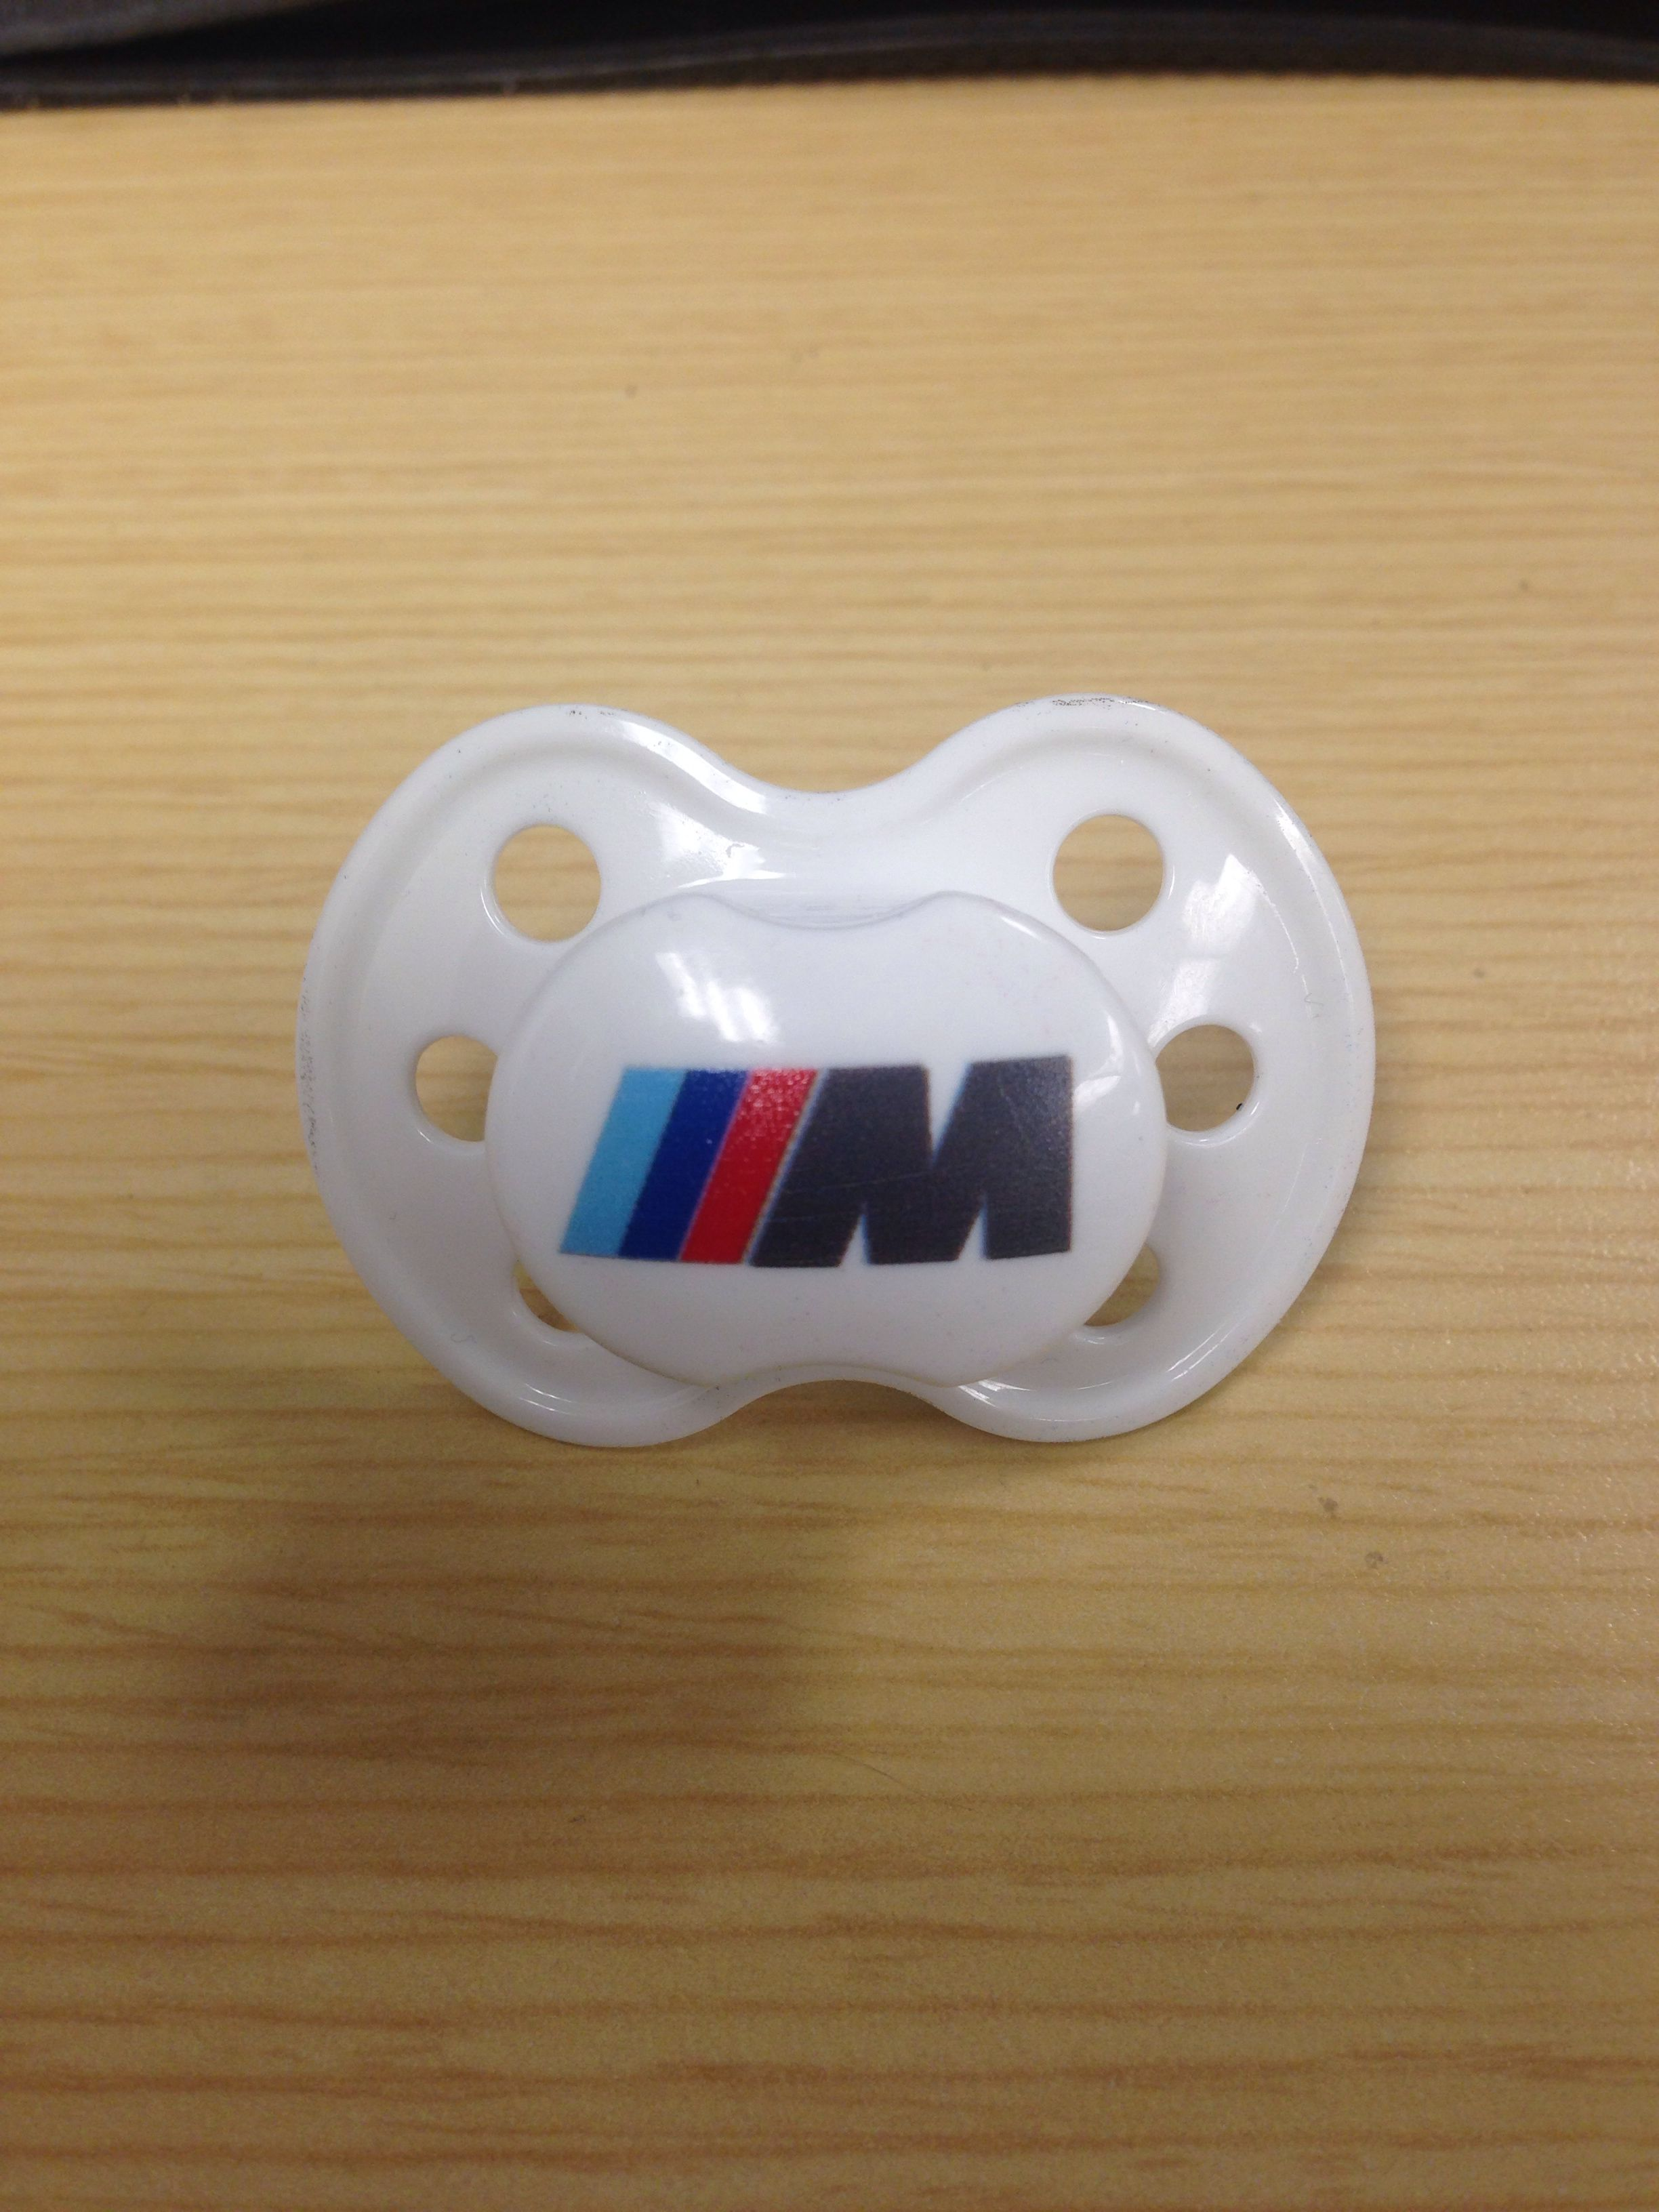 This is the only place to buy a ///M logo baby pacifier or nuk. #bmwnuk.